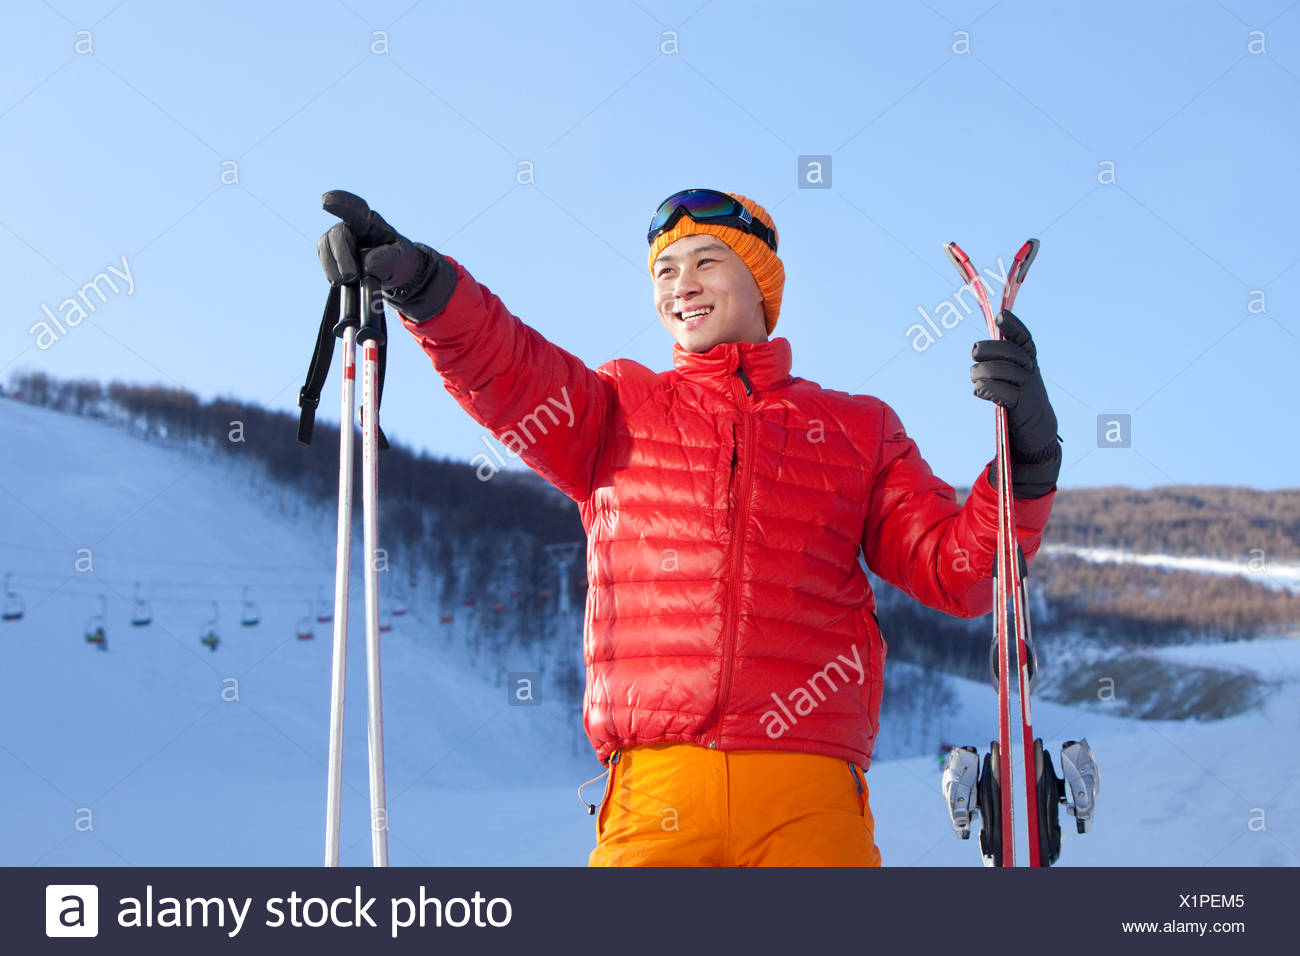 Young man in ski resort - Stock Image